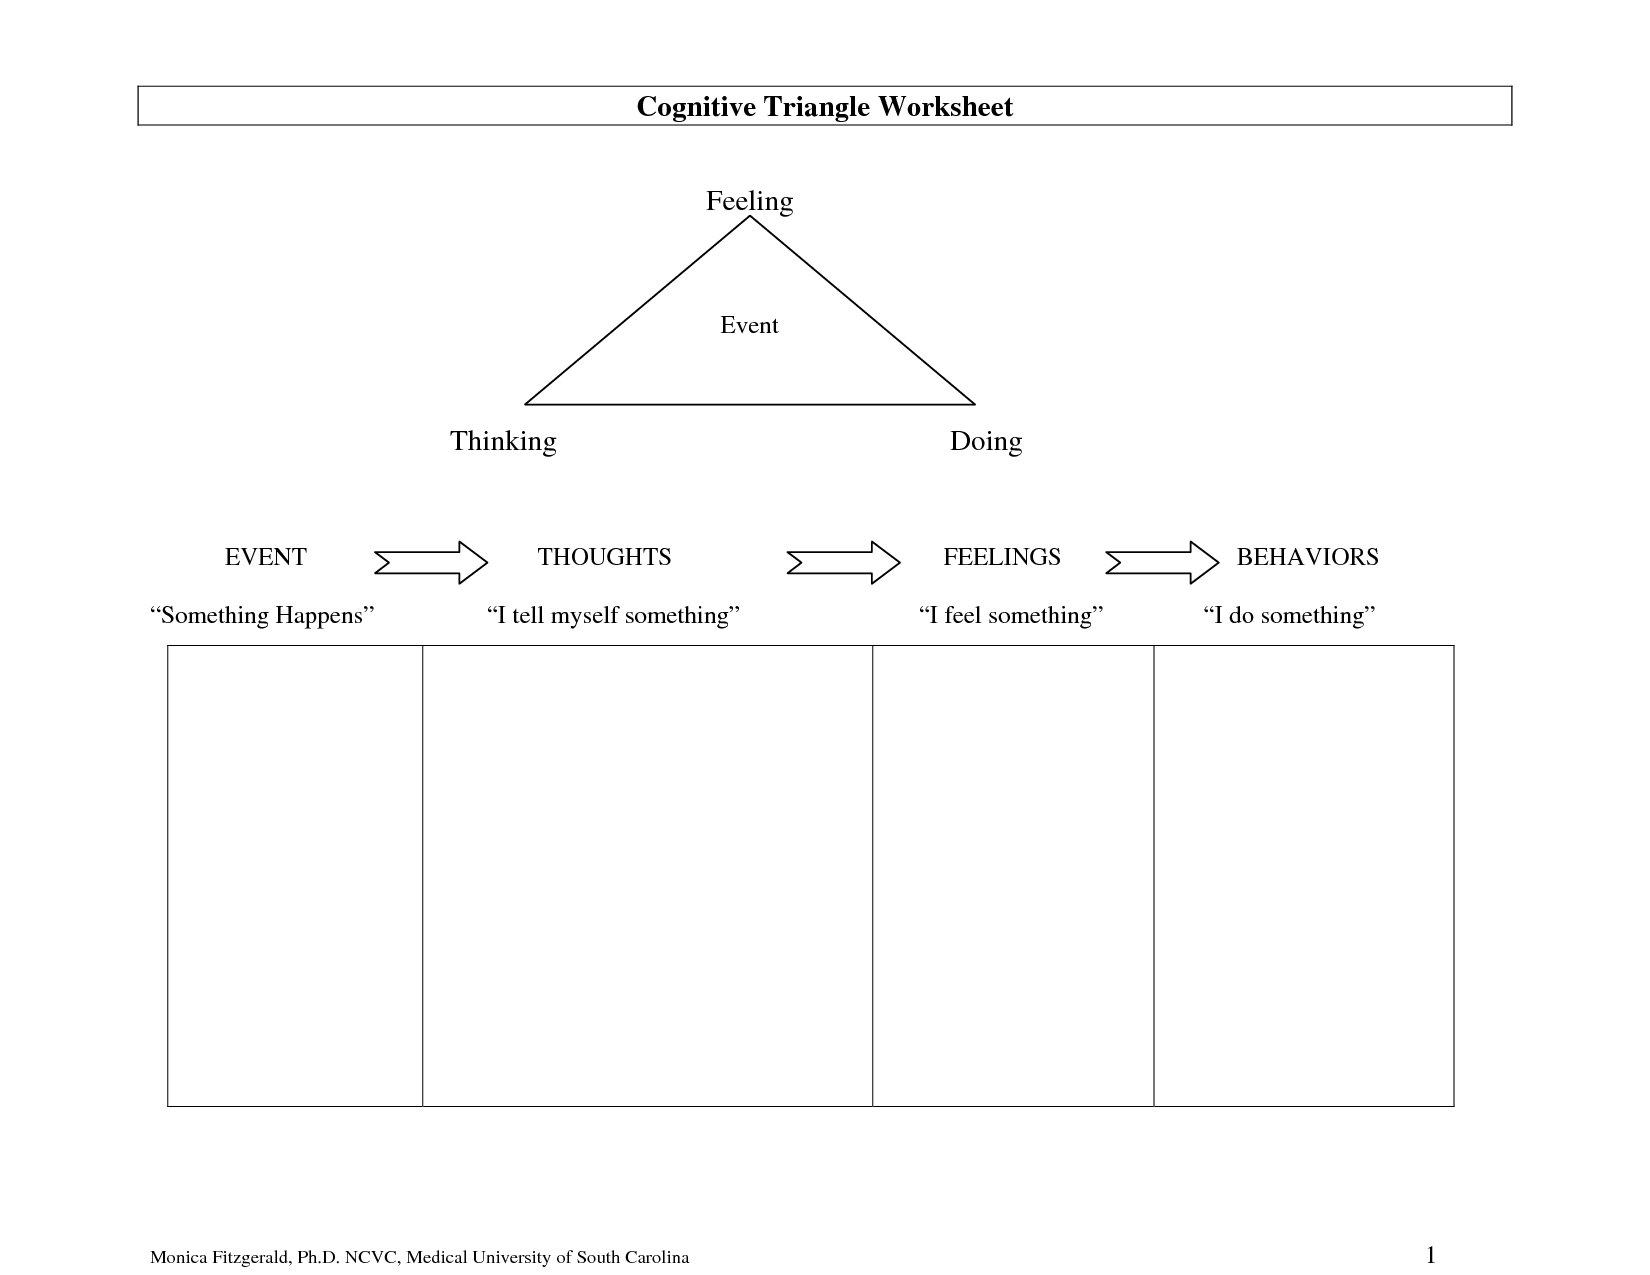 worksheet Triangle Worksheet full size printable feelings worksheets cognitive triangle worksheet feeling thinking doing